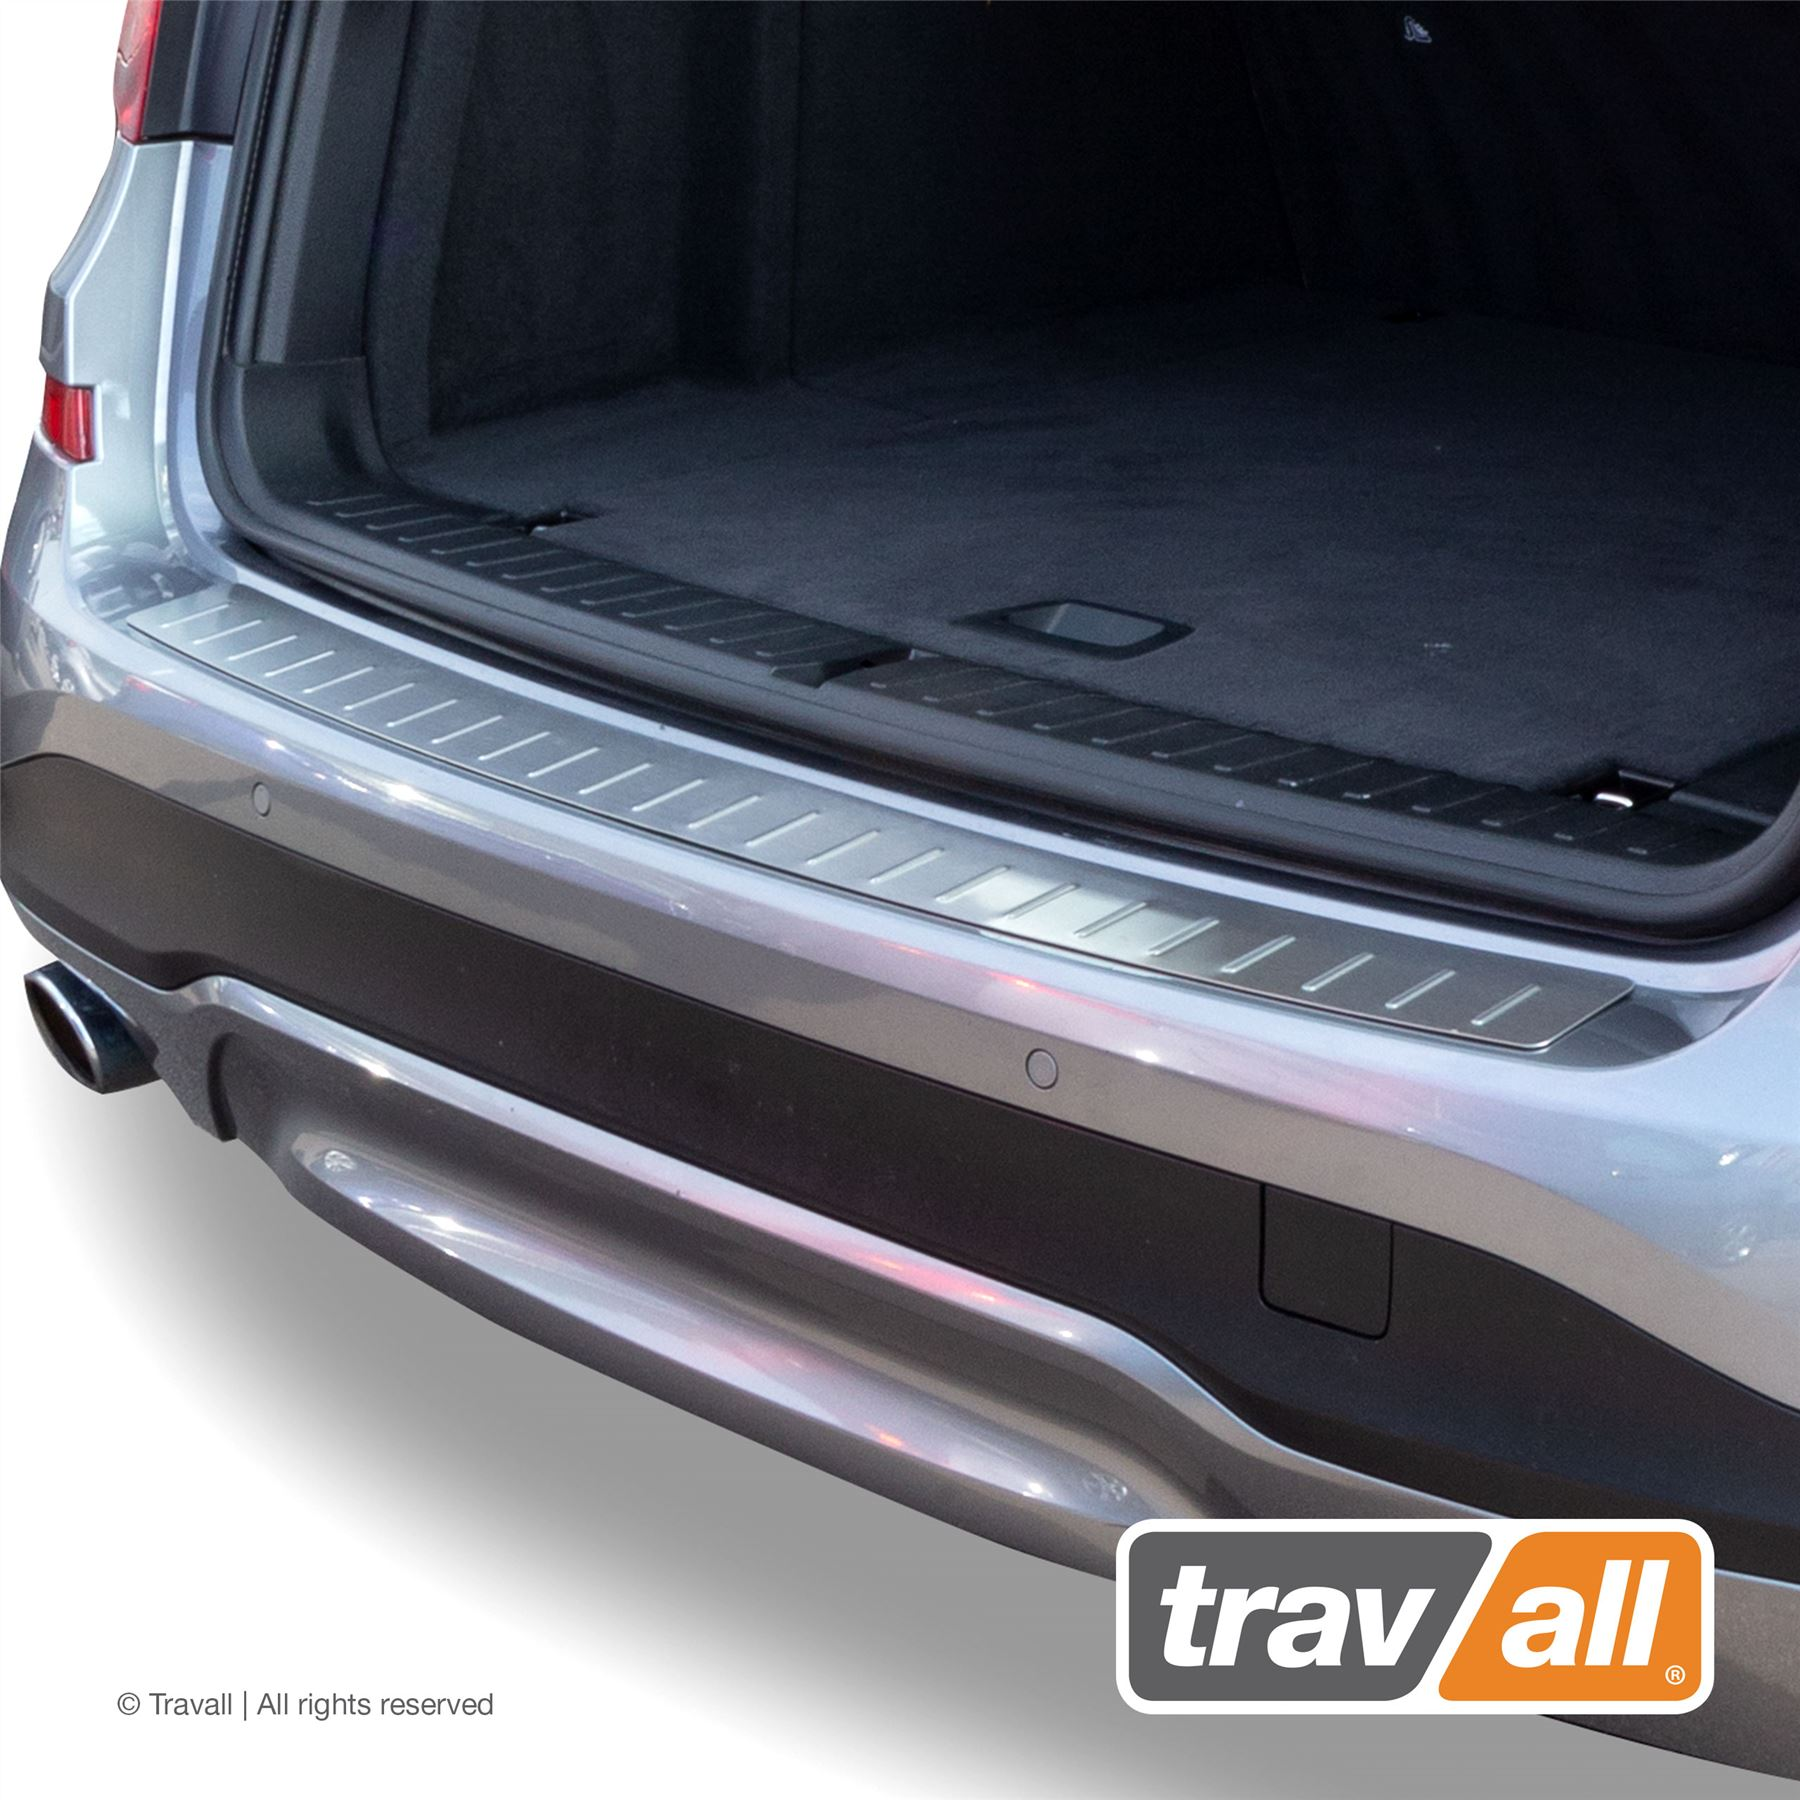 SILVER STAINLESS STEEL BMW X3 TRAVALL BUMPER PROTECTOR 2010-2014